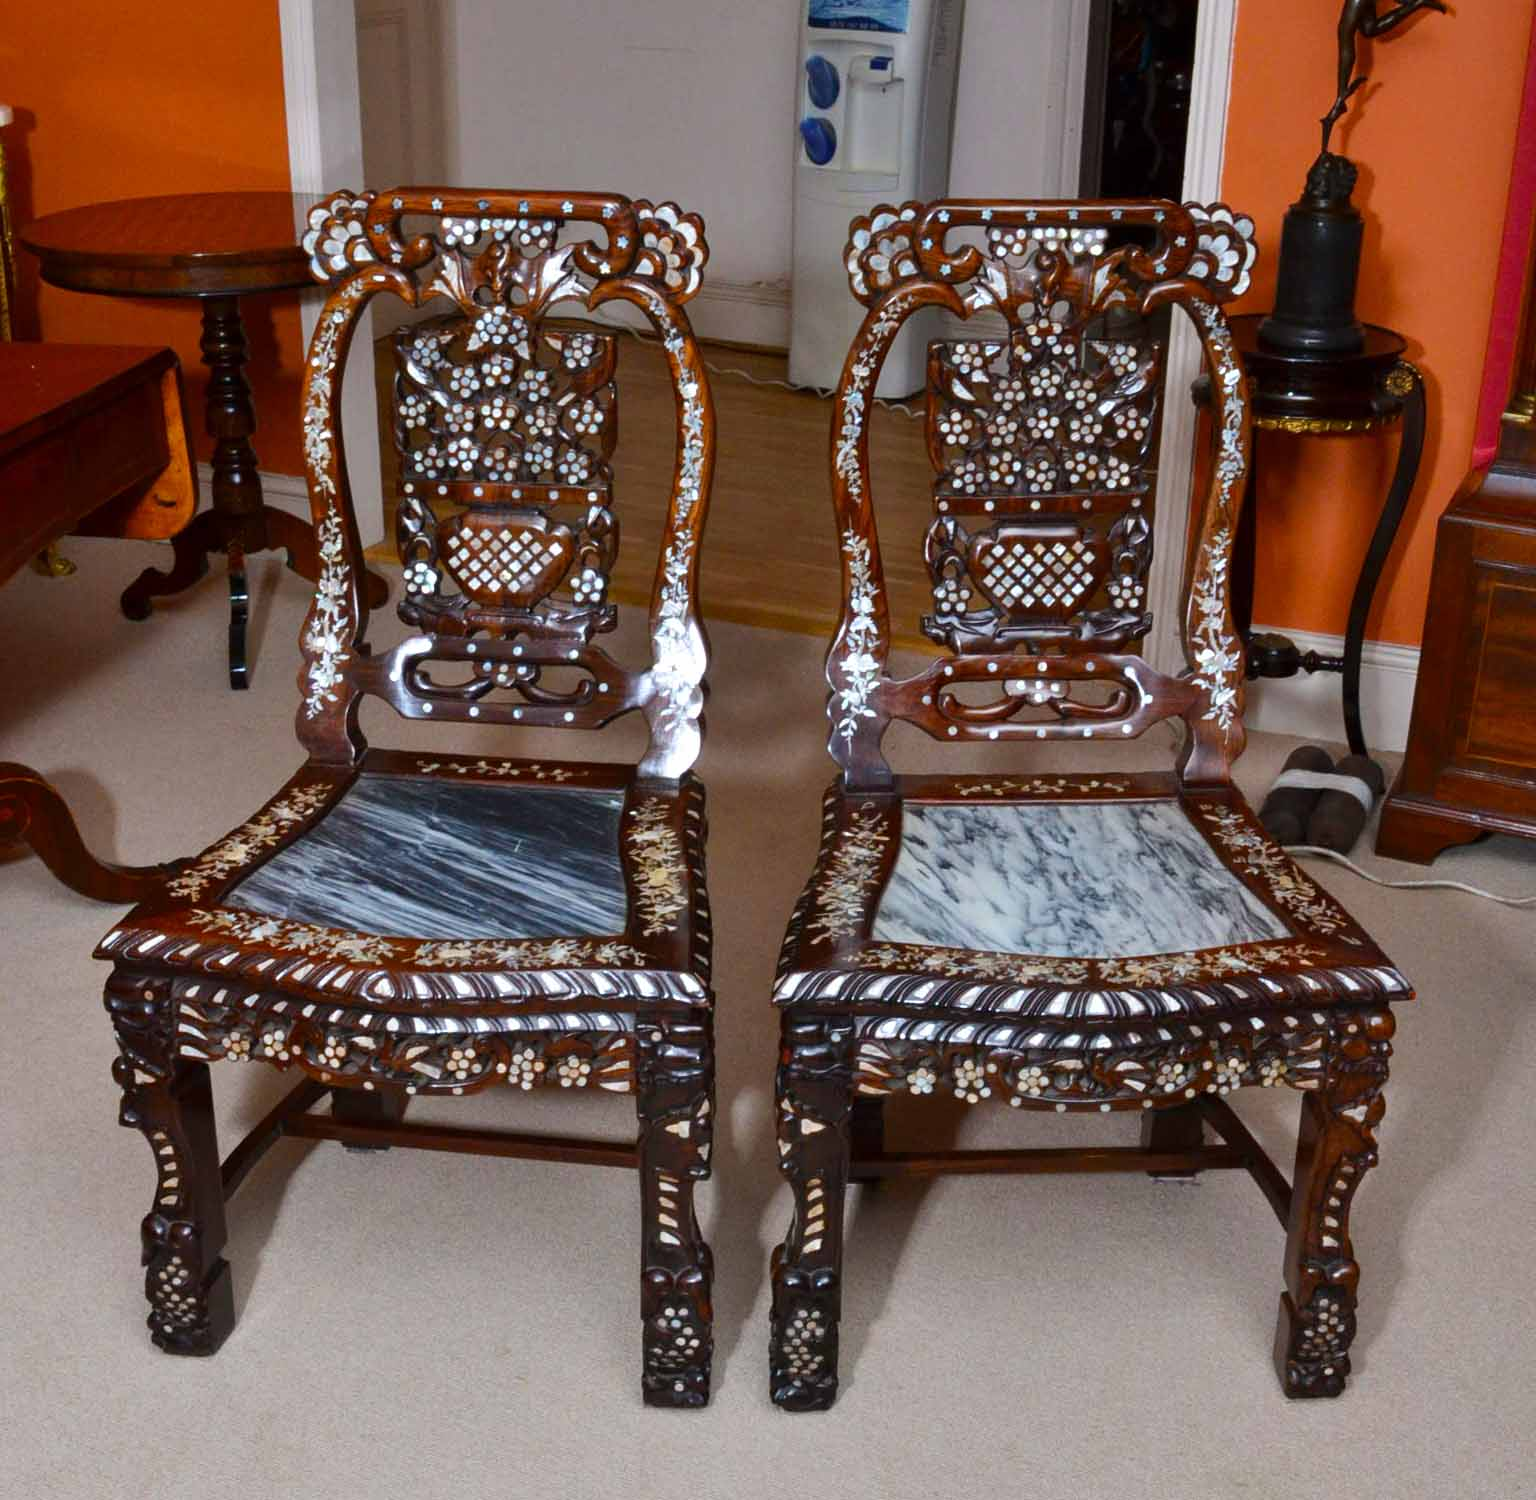 Ordinaire Antique Pair Chinese Side Chairs Inlaid Mother Of Pearl Ref No 04224